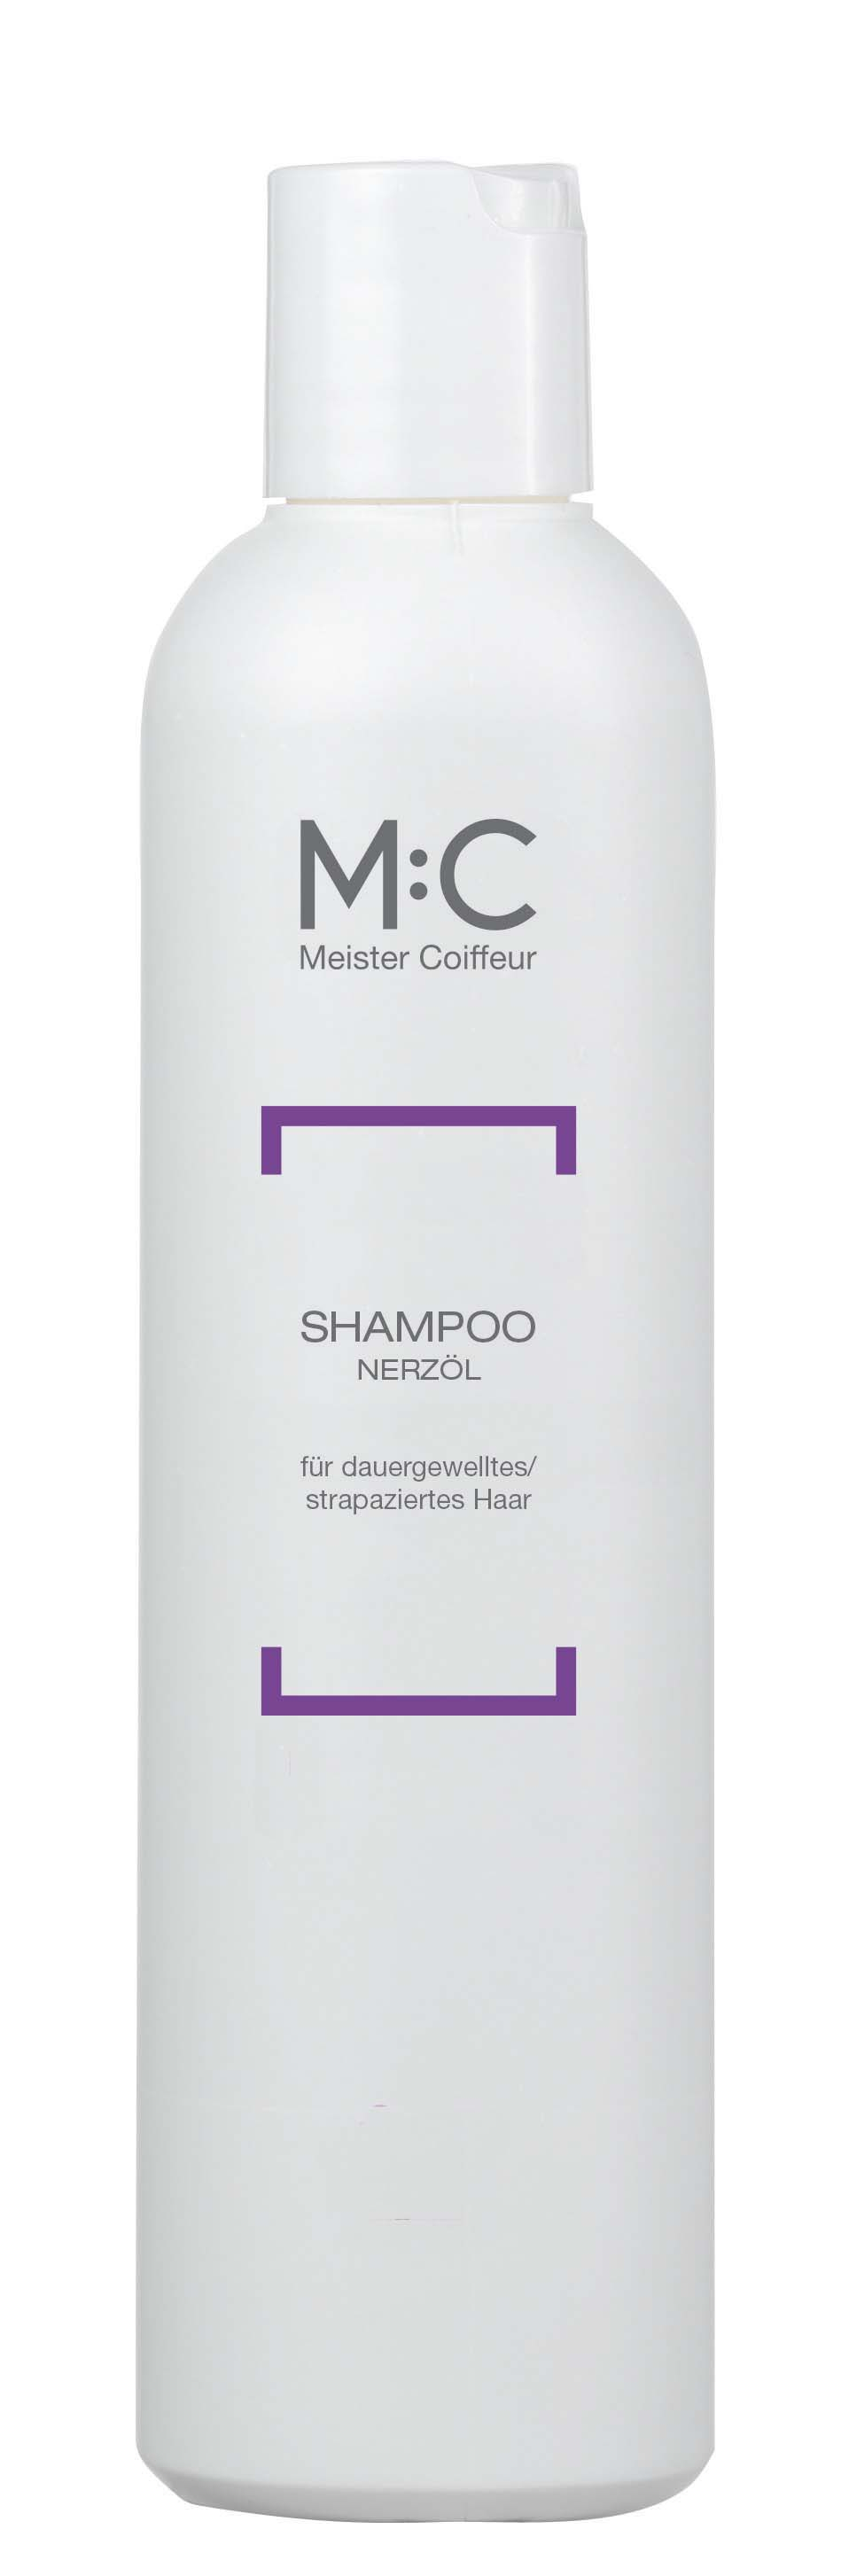 M:C Shampoo Mink oil D 250 ml